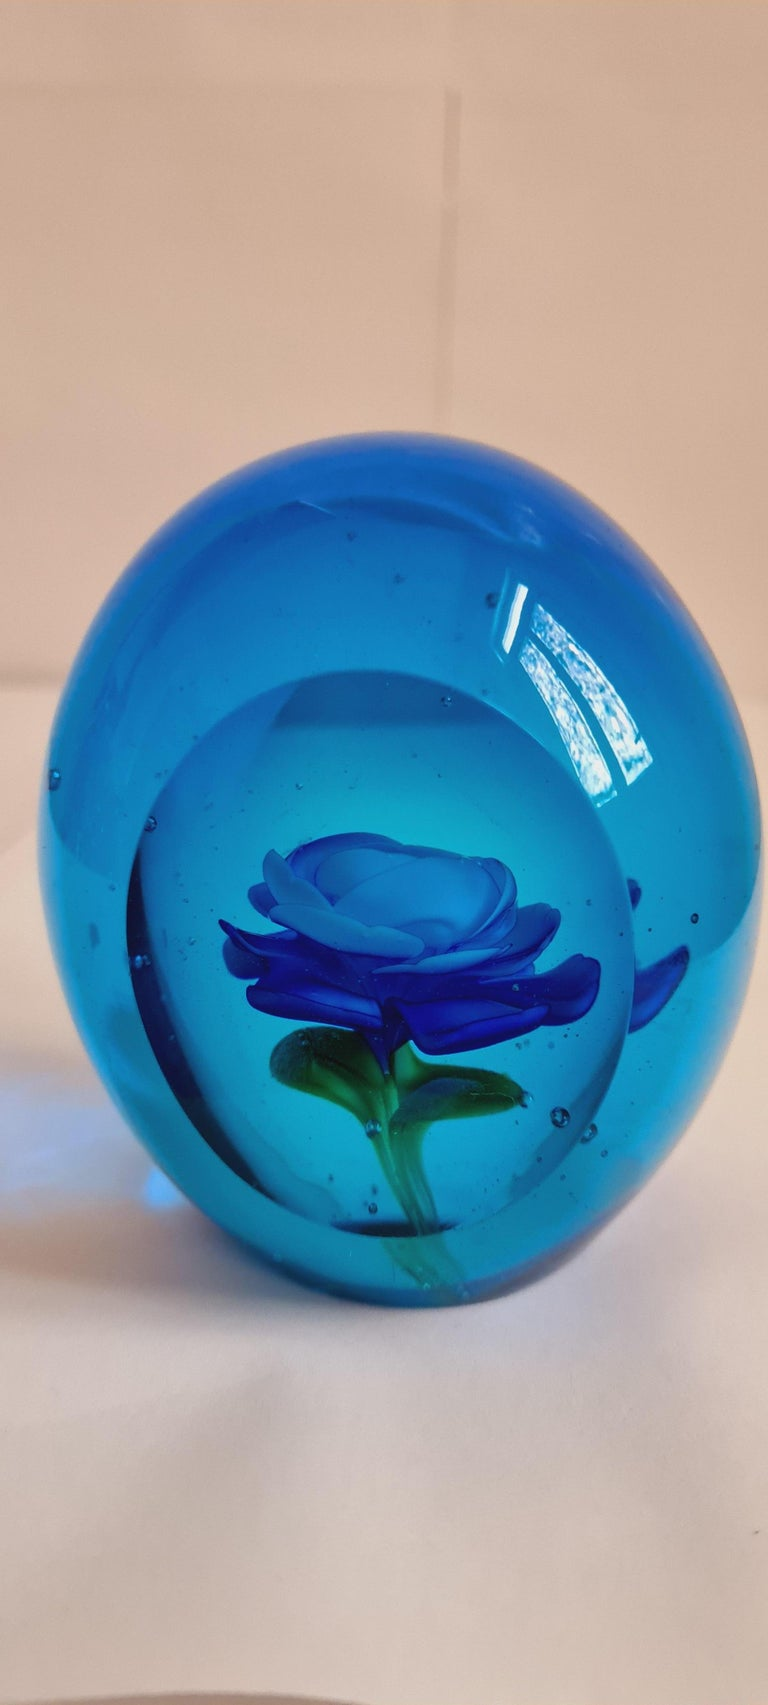 Beautiful blue Murano glass faceted floral paperweight attributed to Archimede Seguso. In excellent condition.